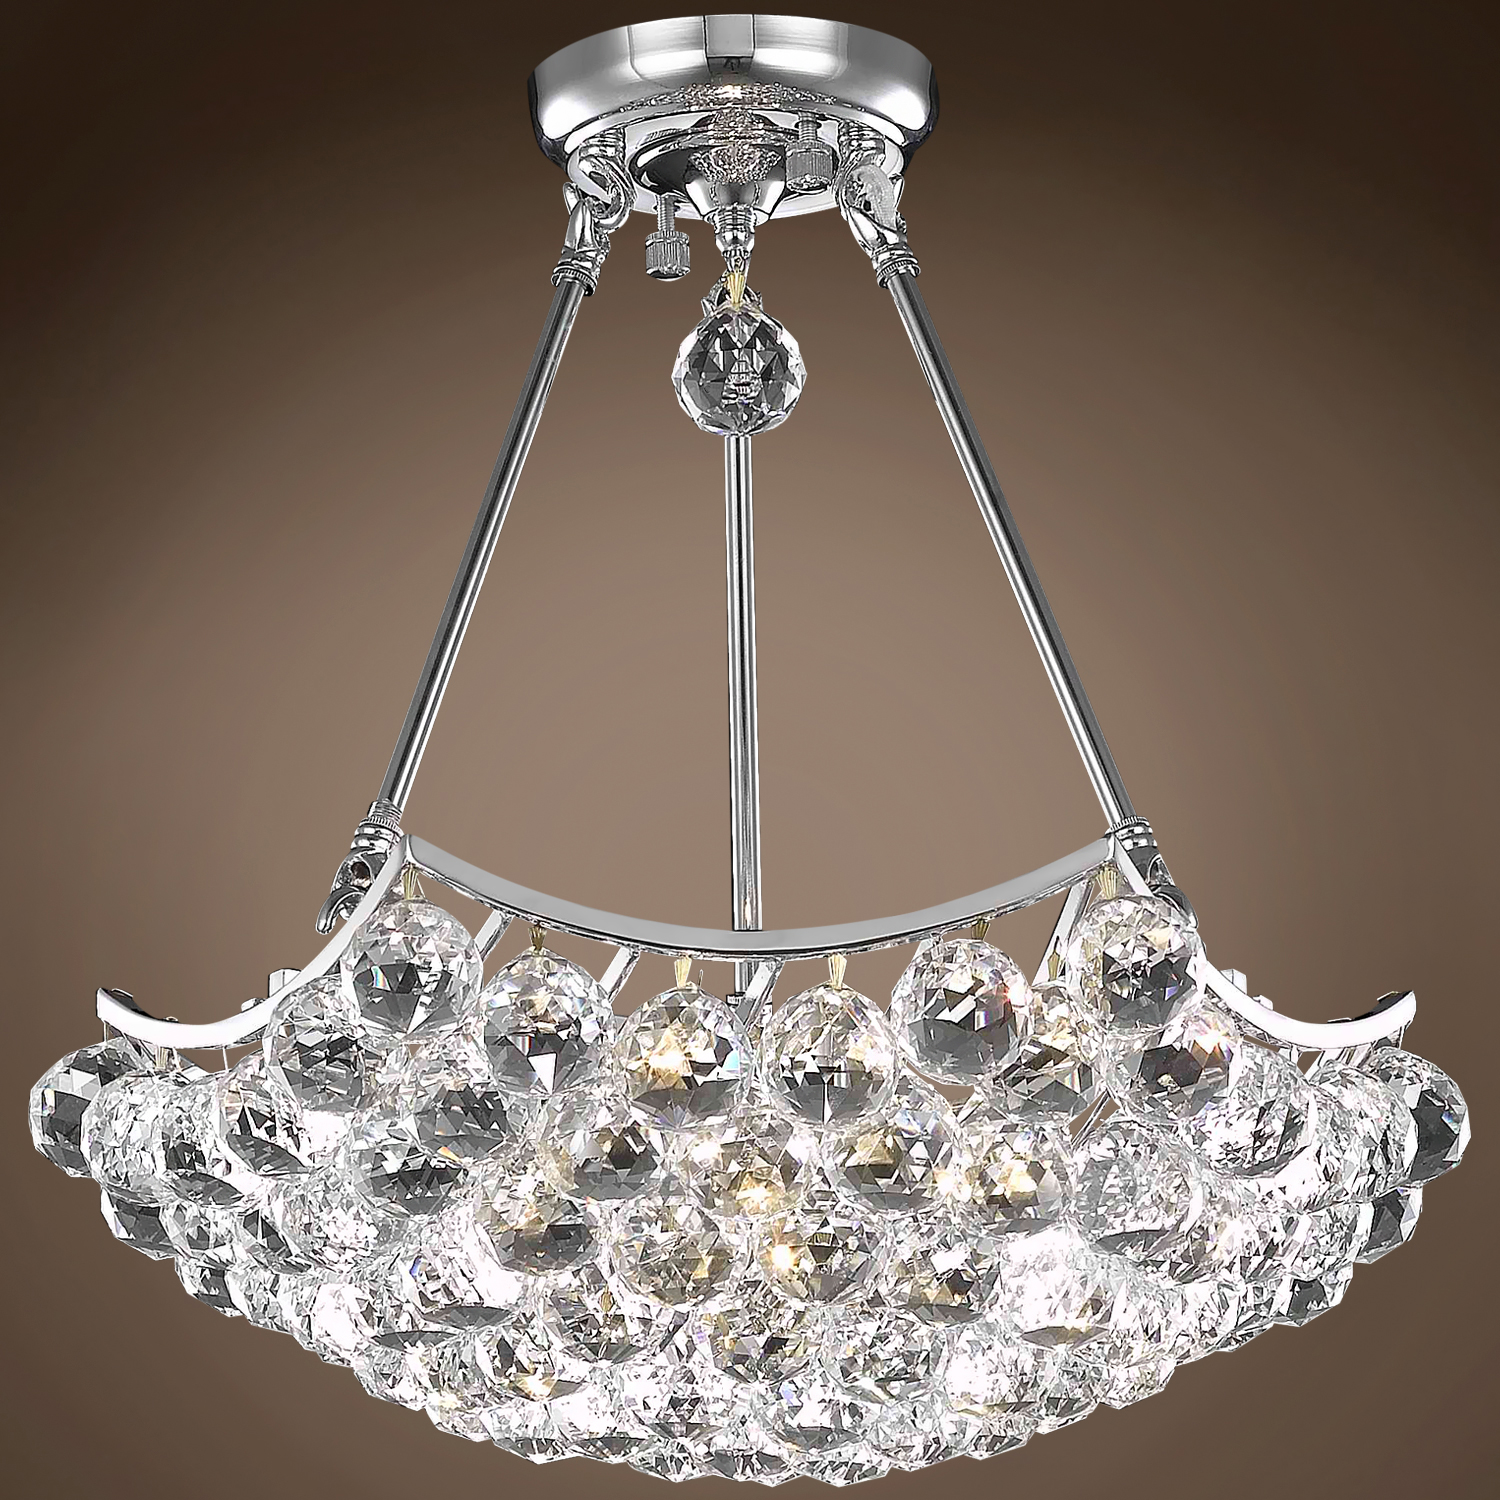 18 Light Chandelier Gold Finish With European Crystals